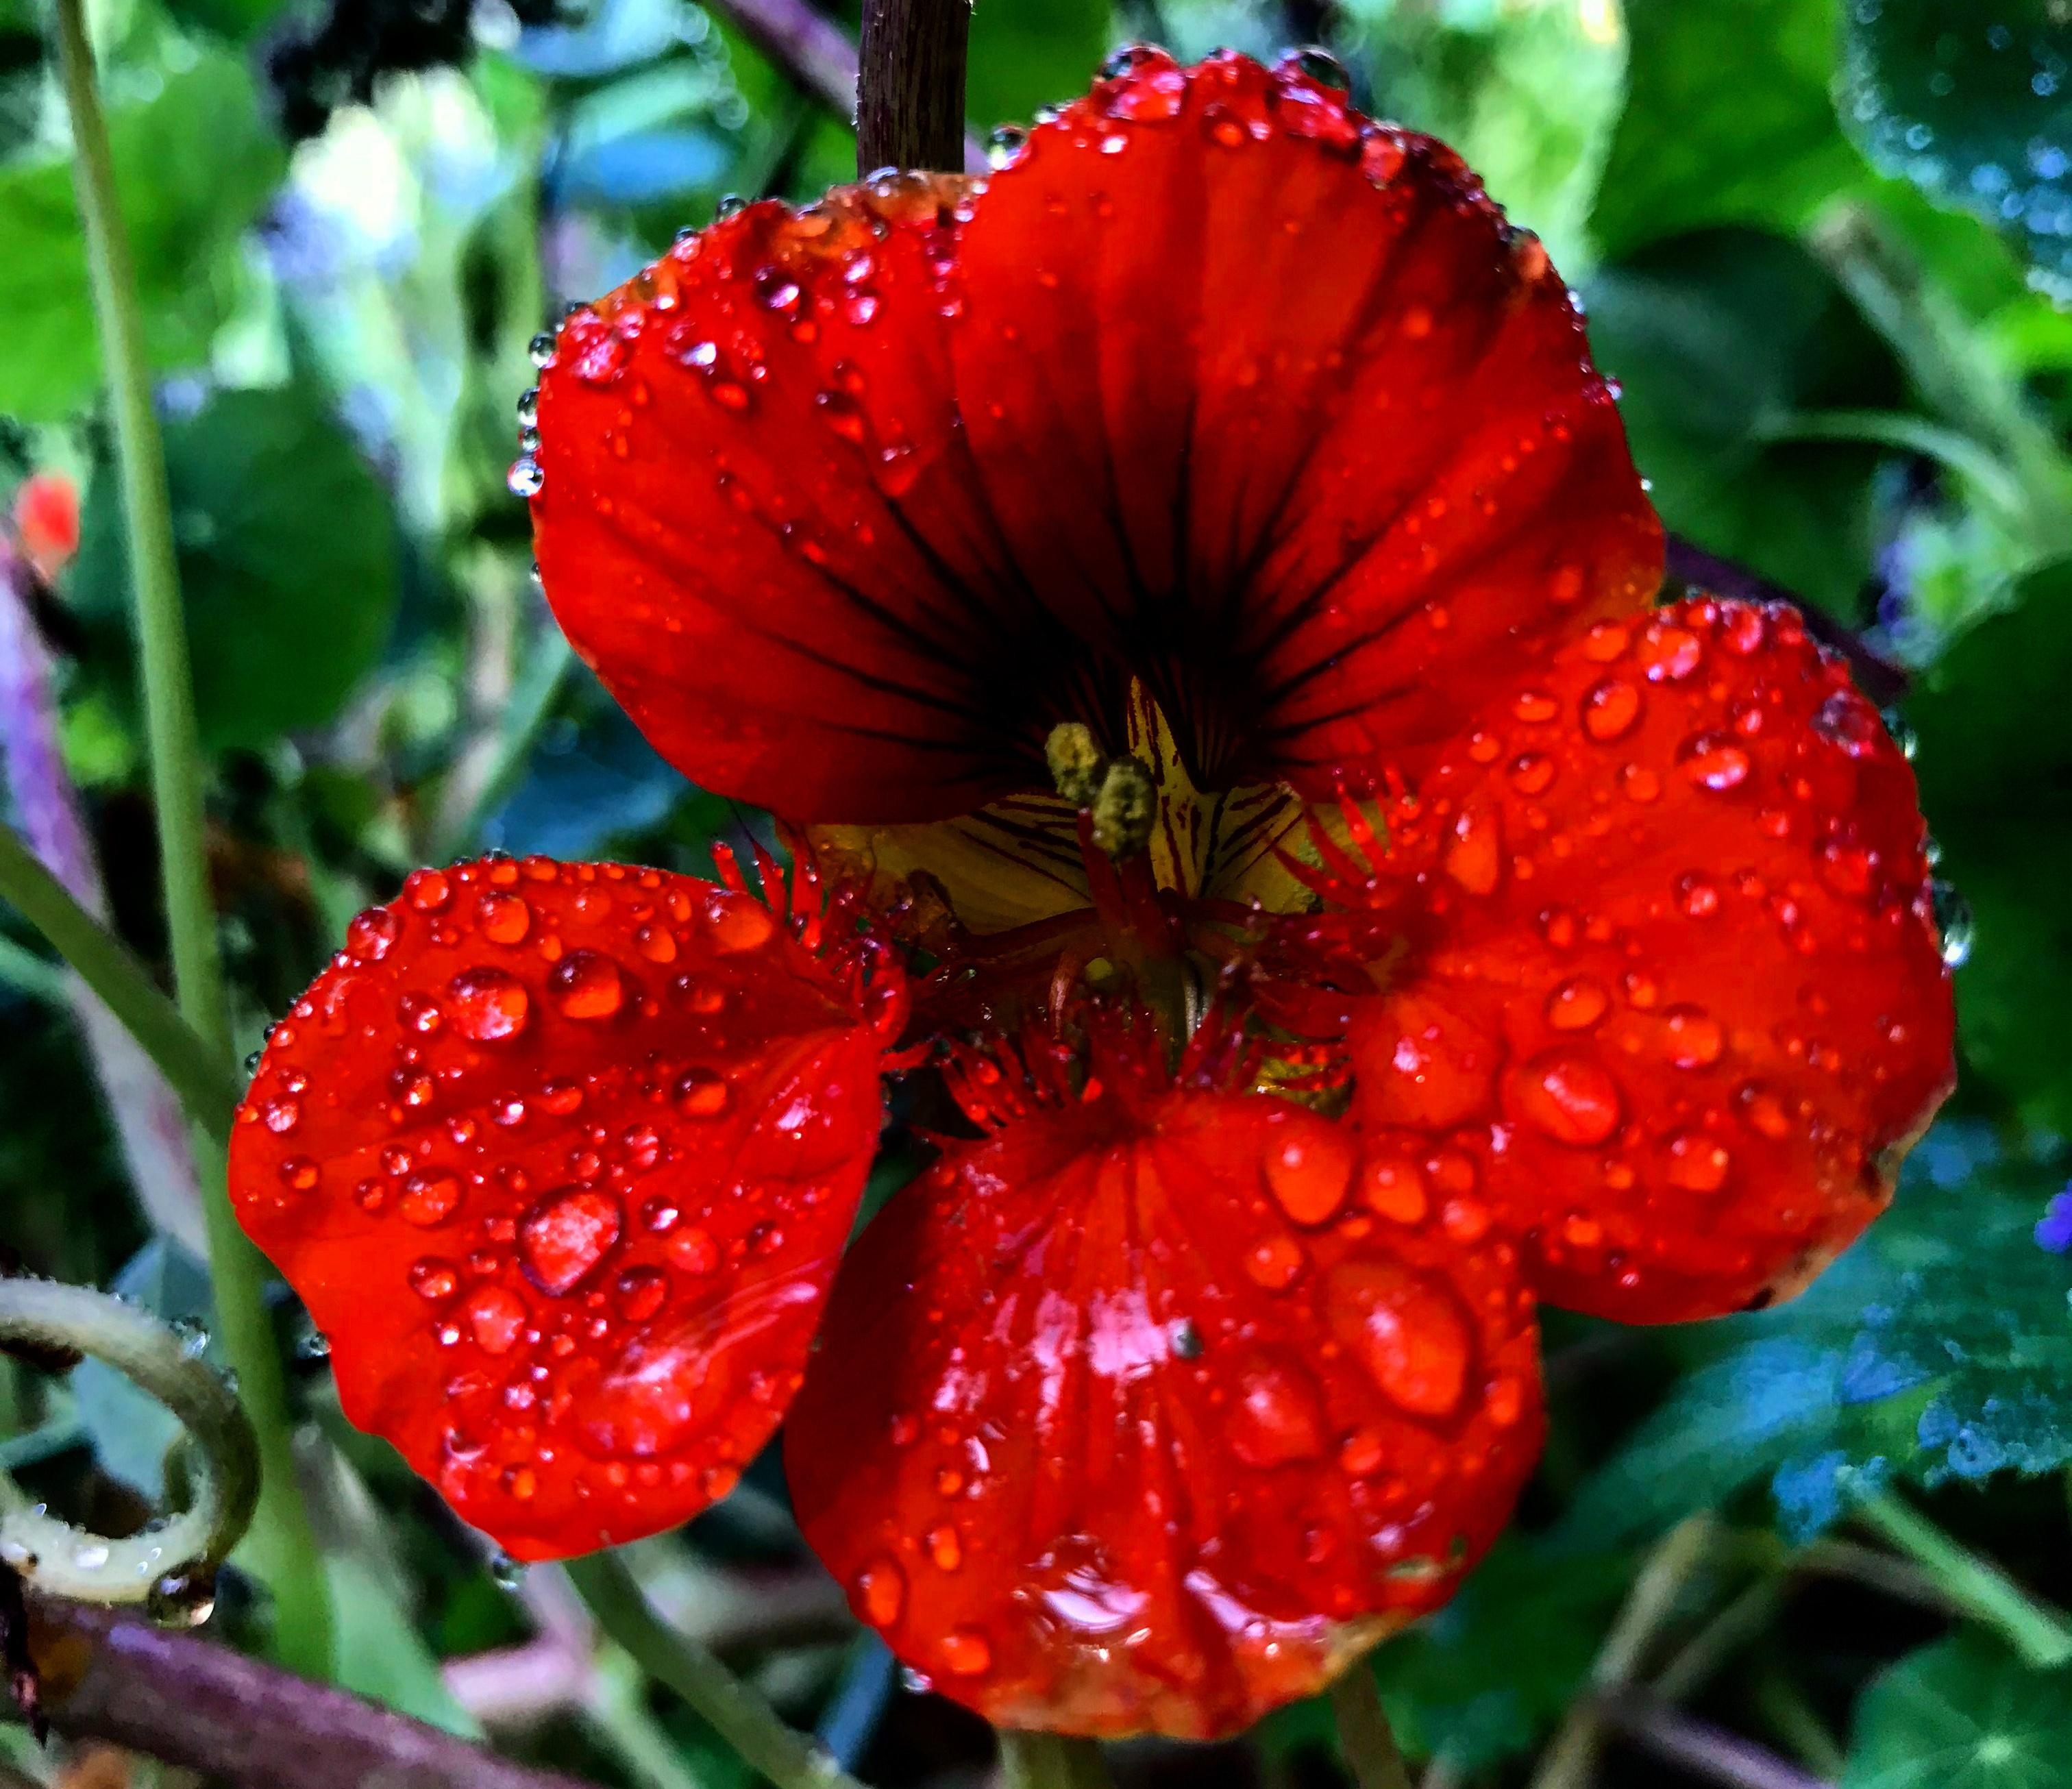 The last nasturtiums hold the key to spring planting